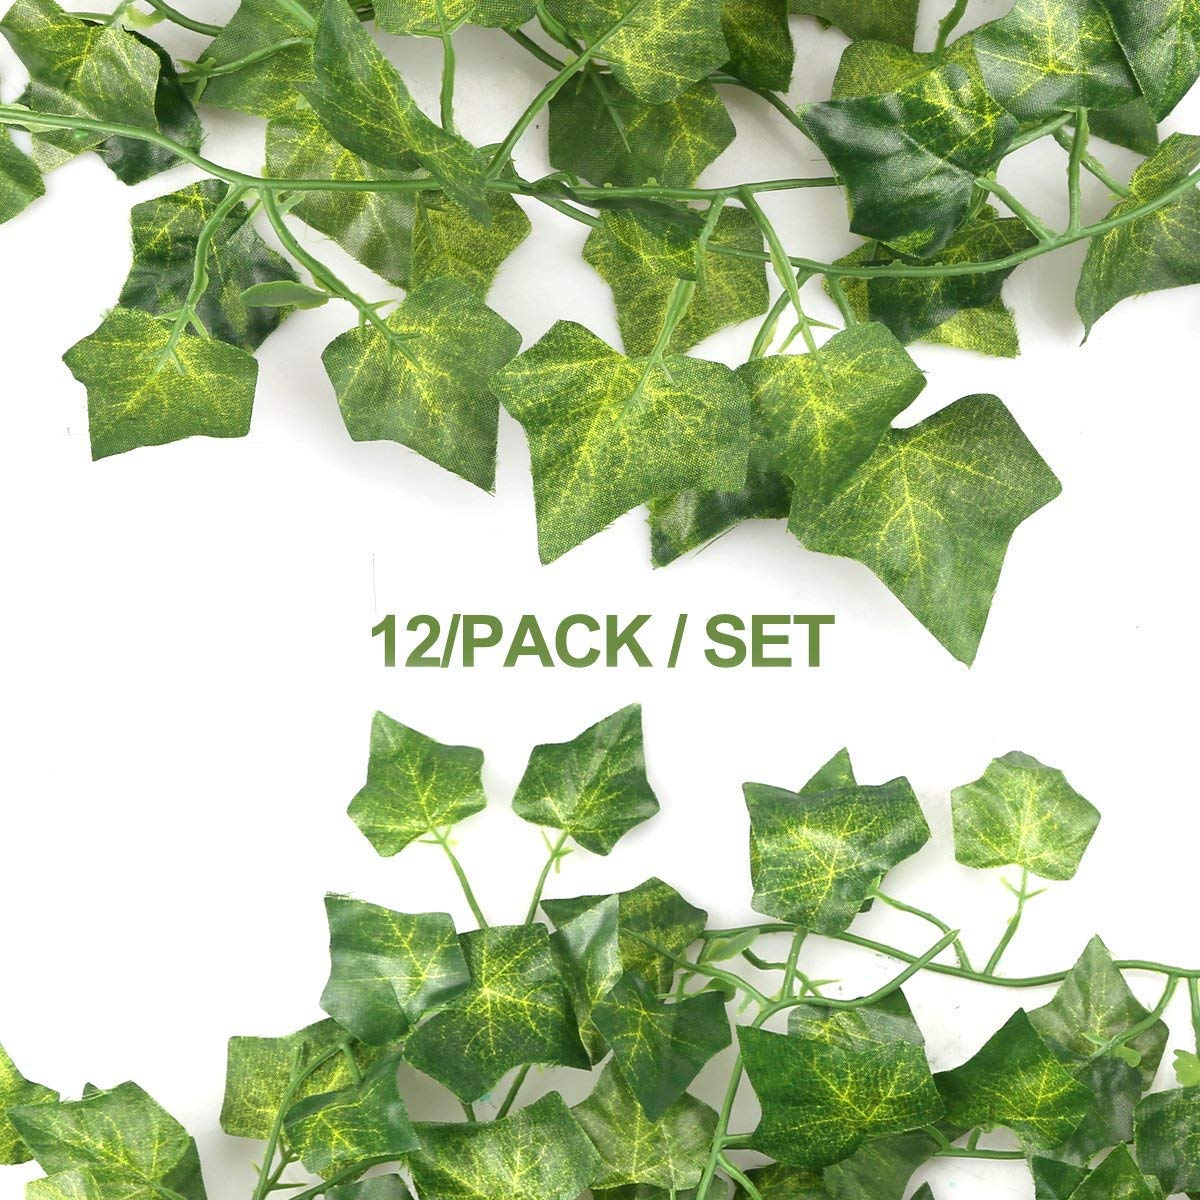 Plantas Hiedra Artificial, 84 Ft-12 Pack Planta De Hiedra Artificial Garland Plants Vine